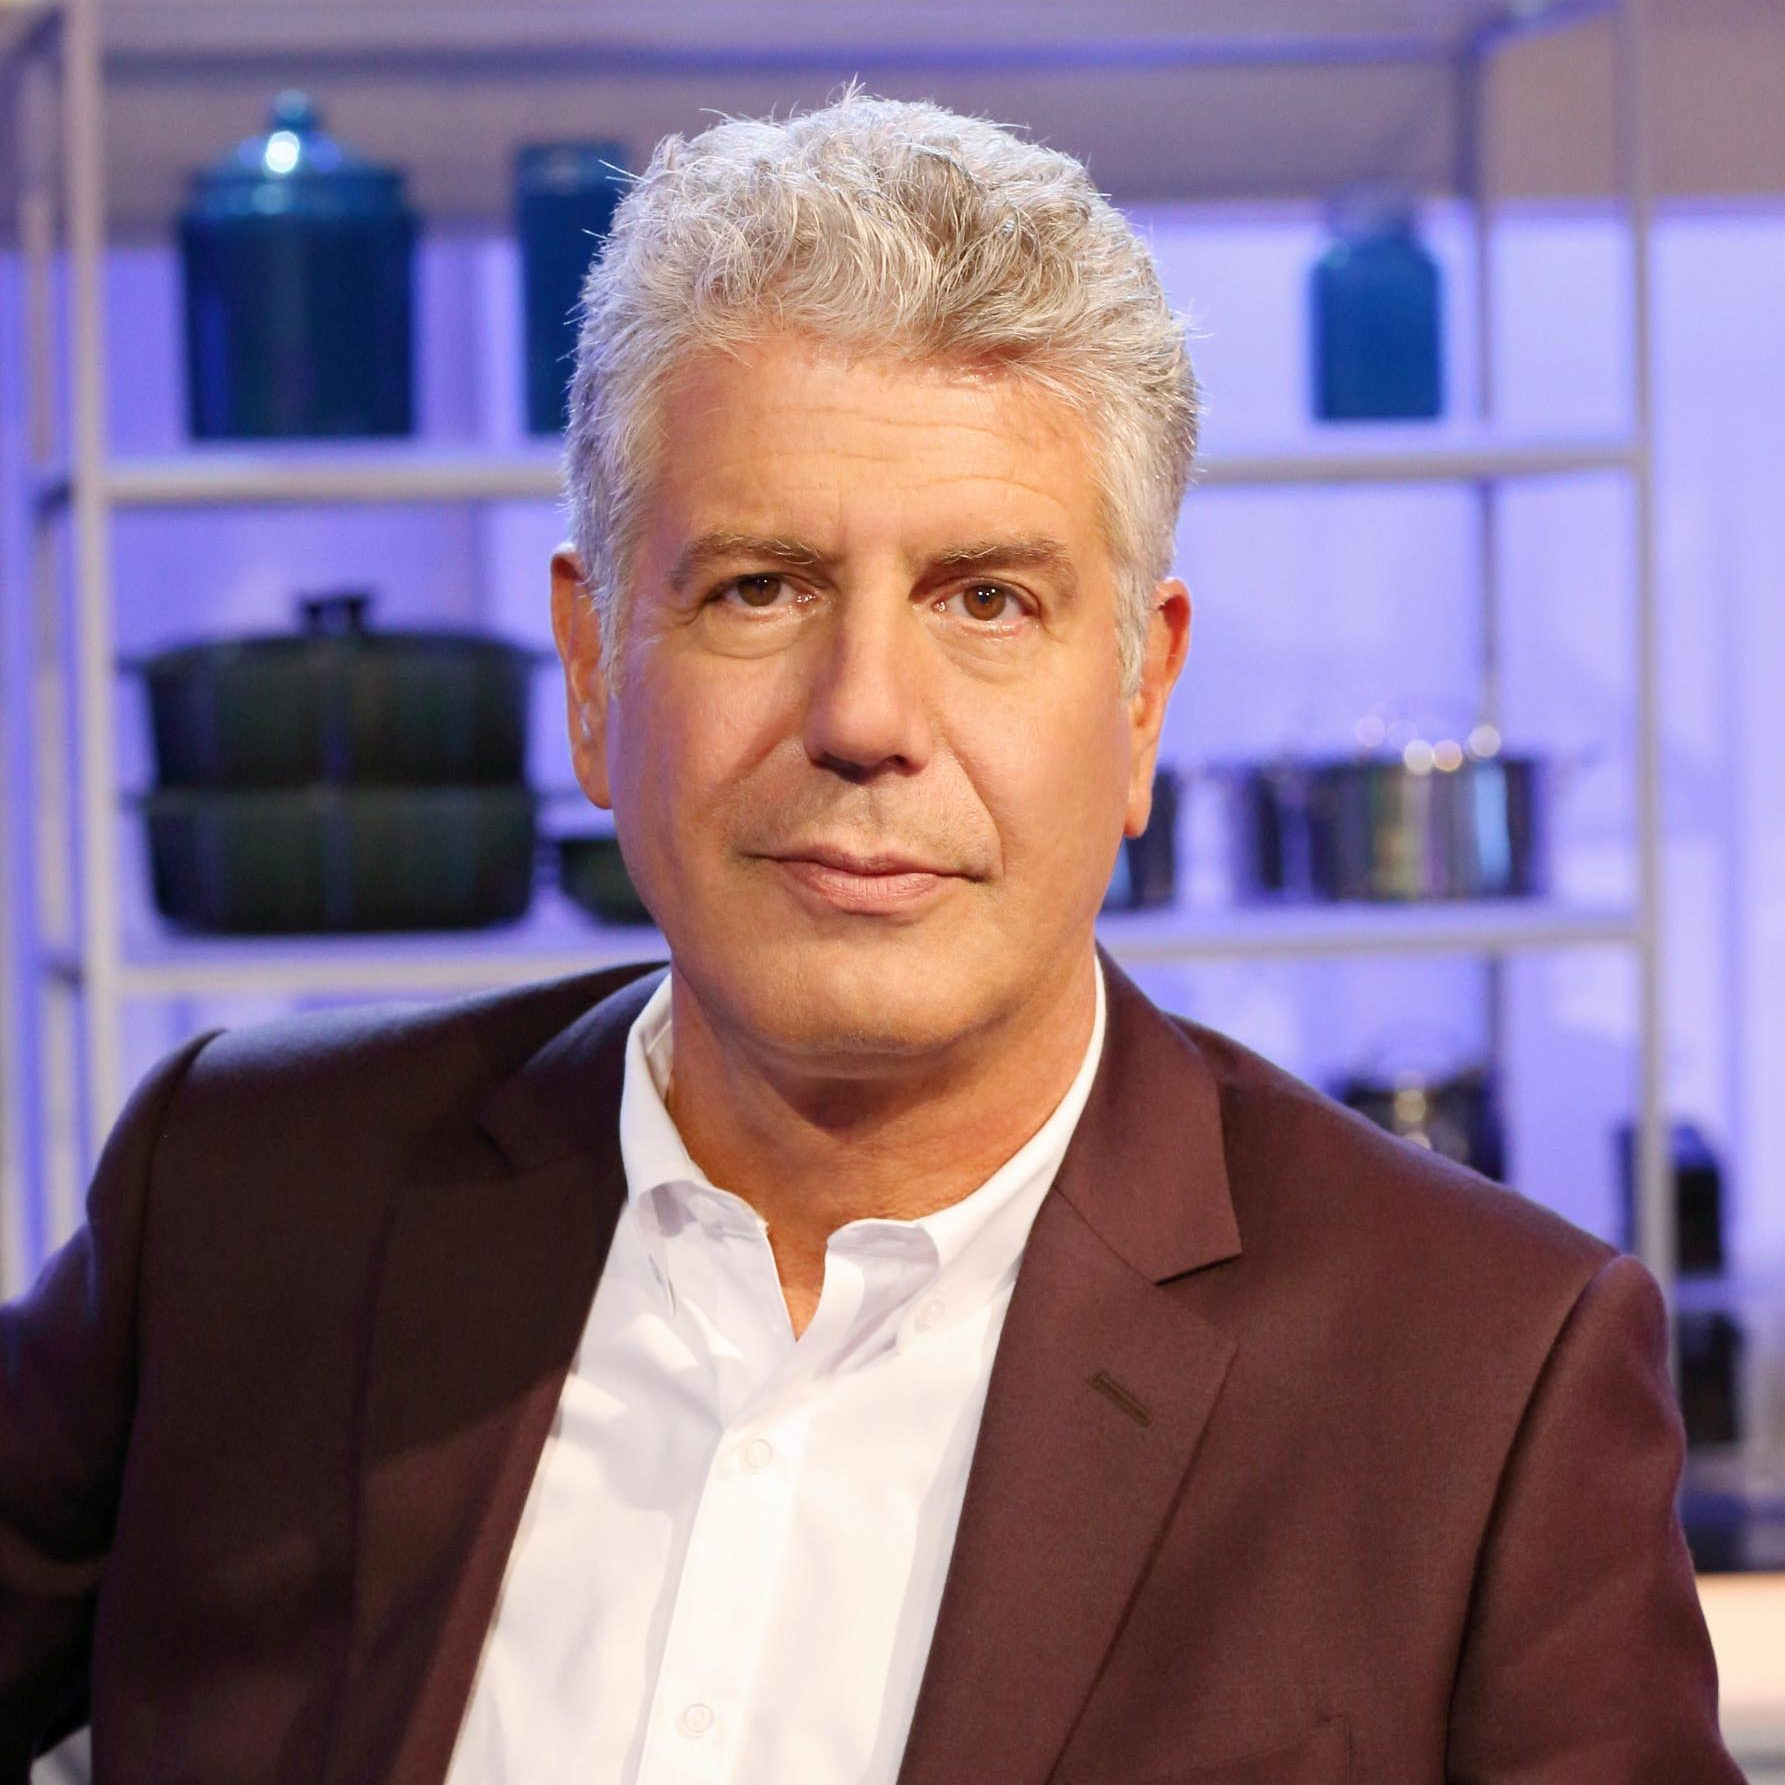 Editorial use only. No book cover usage. Mandatory Credit: Photo by Kinetic Content/Kobal/Shutterstock (5881000a) Anthony Bourdain The Taste - 2013 Kinetic Content USA TV Portrait Tv Classics